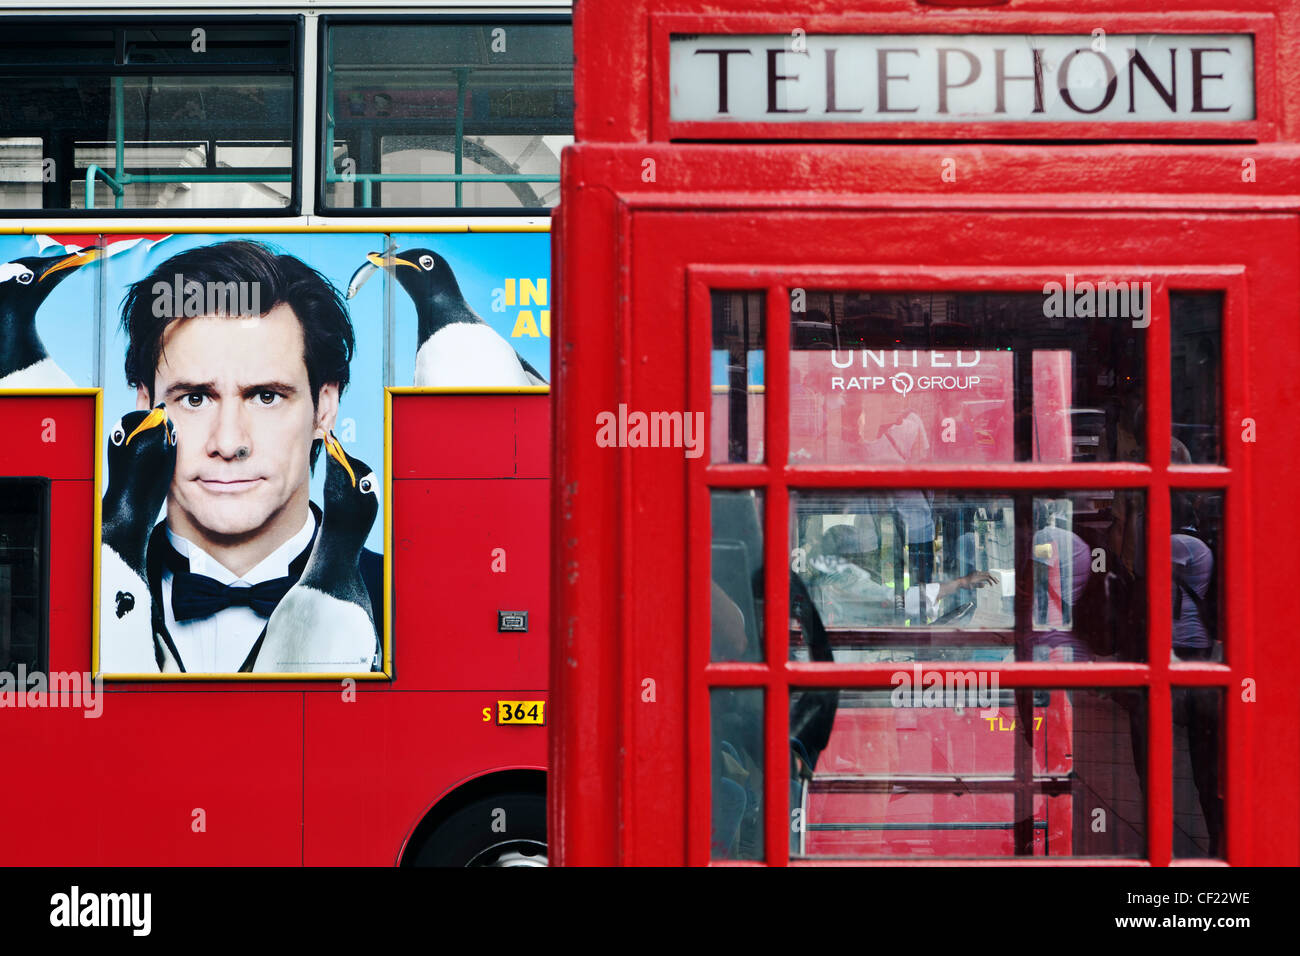 A red telephone box and double decker bus. - Stock Image